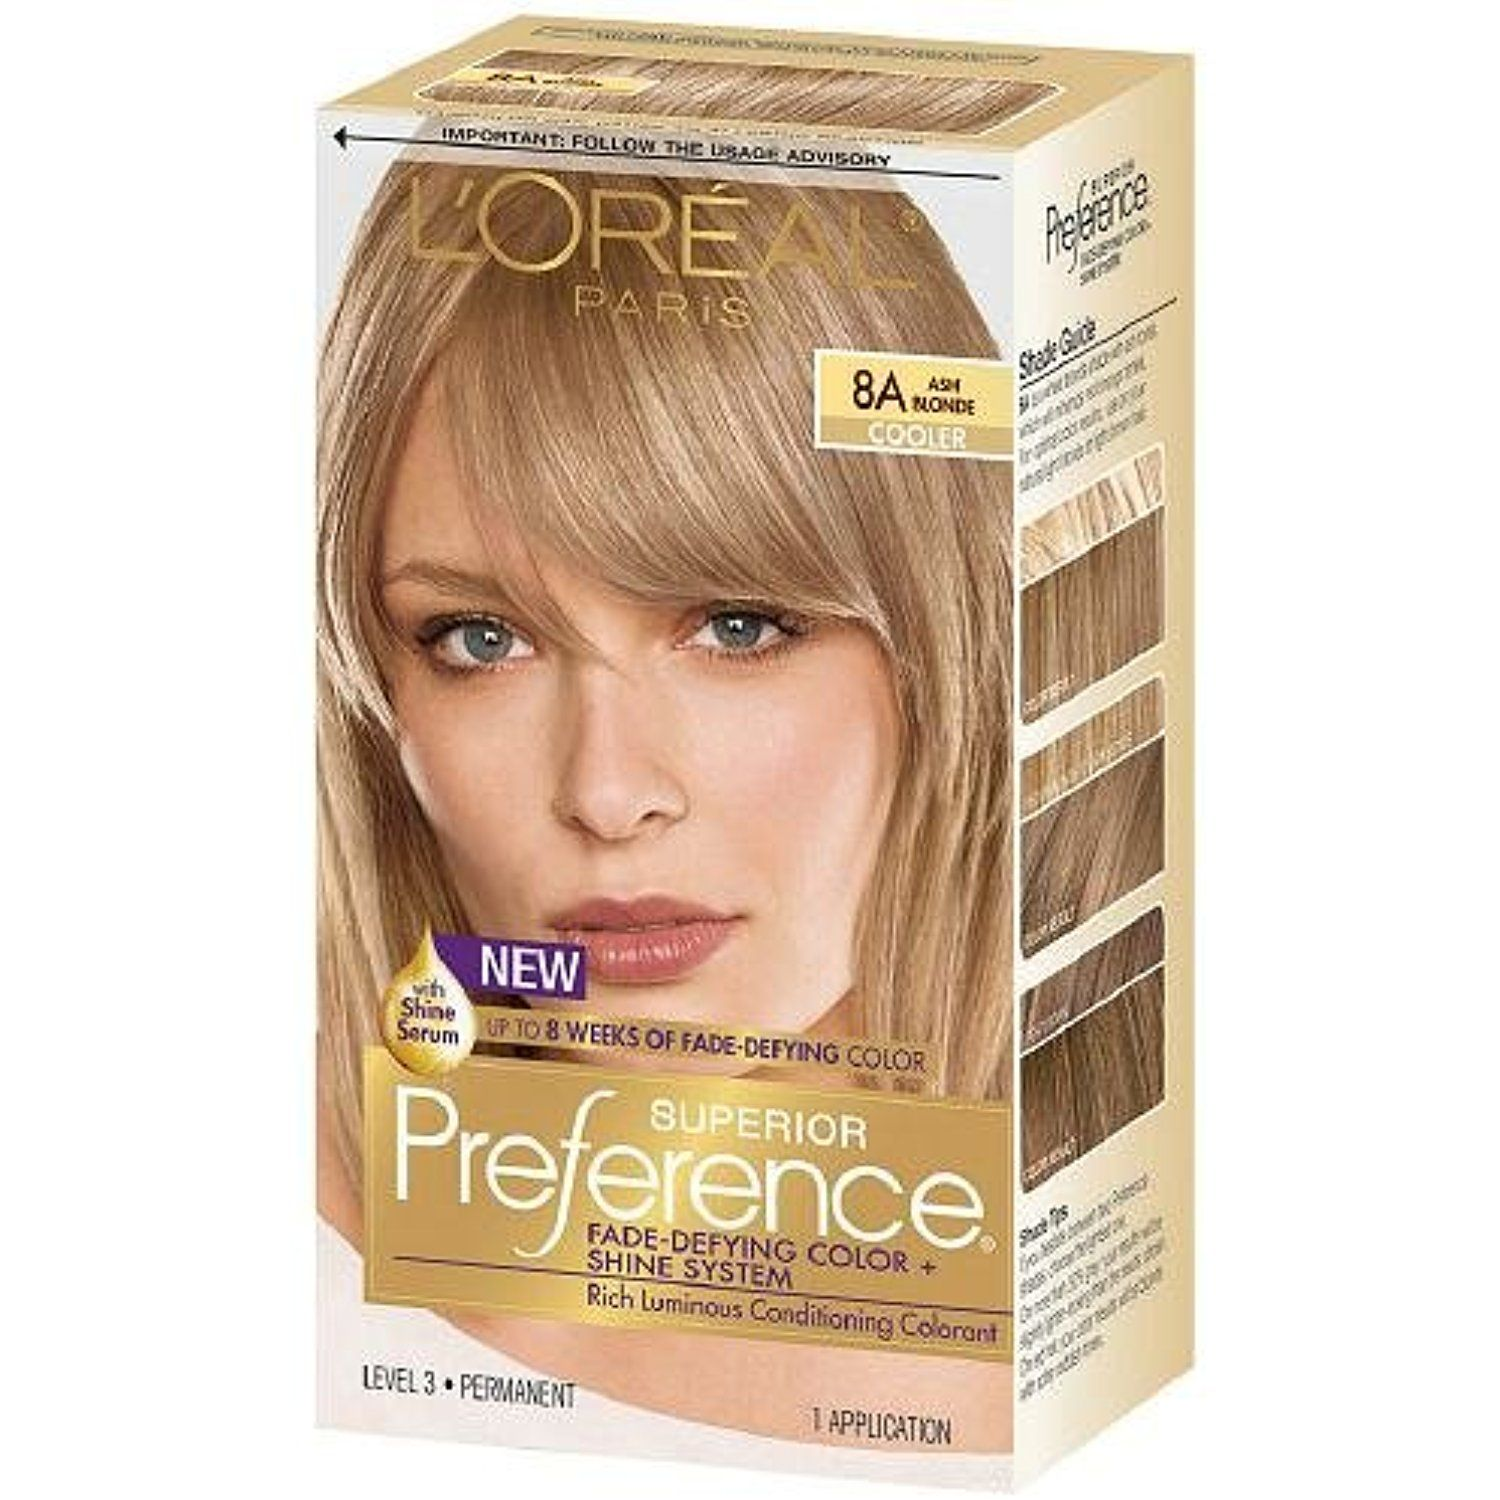 Pref Haircol 8a Size 1ct L Oreal Preference Hair Color Ash Blonde Personalcare Ash Hair Color Medium Ash Blonde Hair Ash Blonde